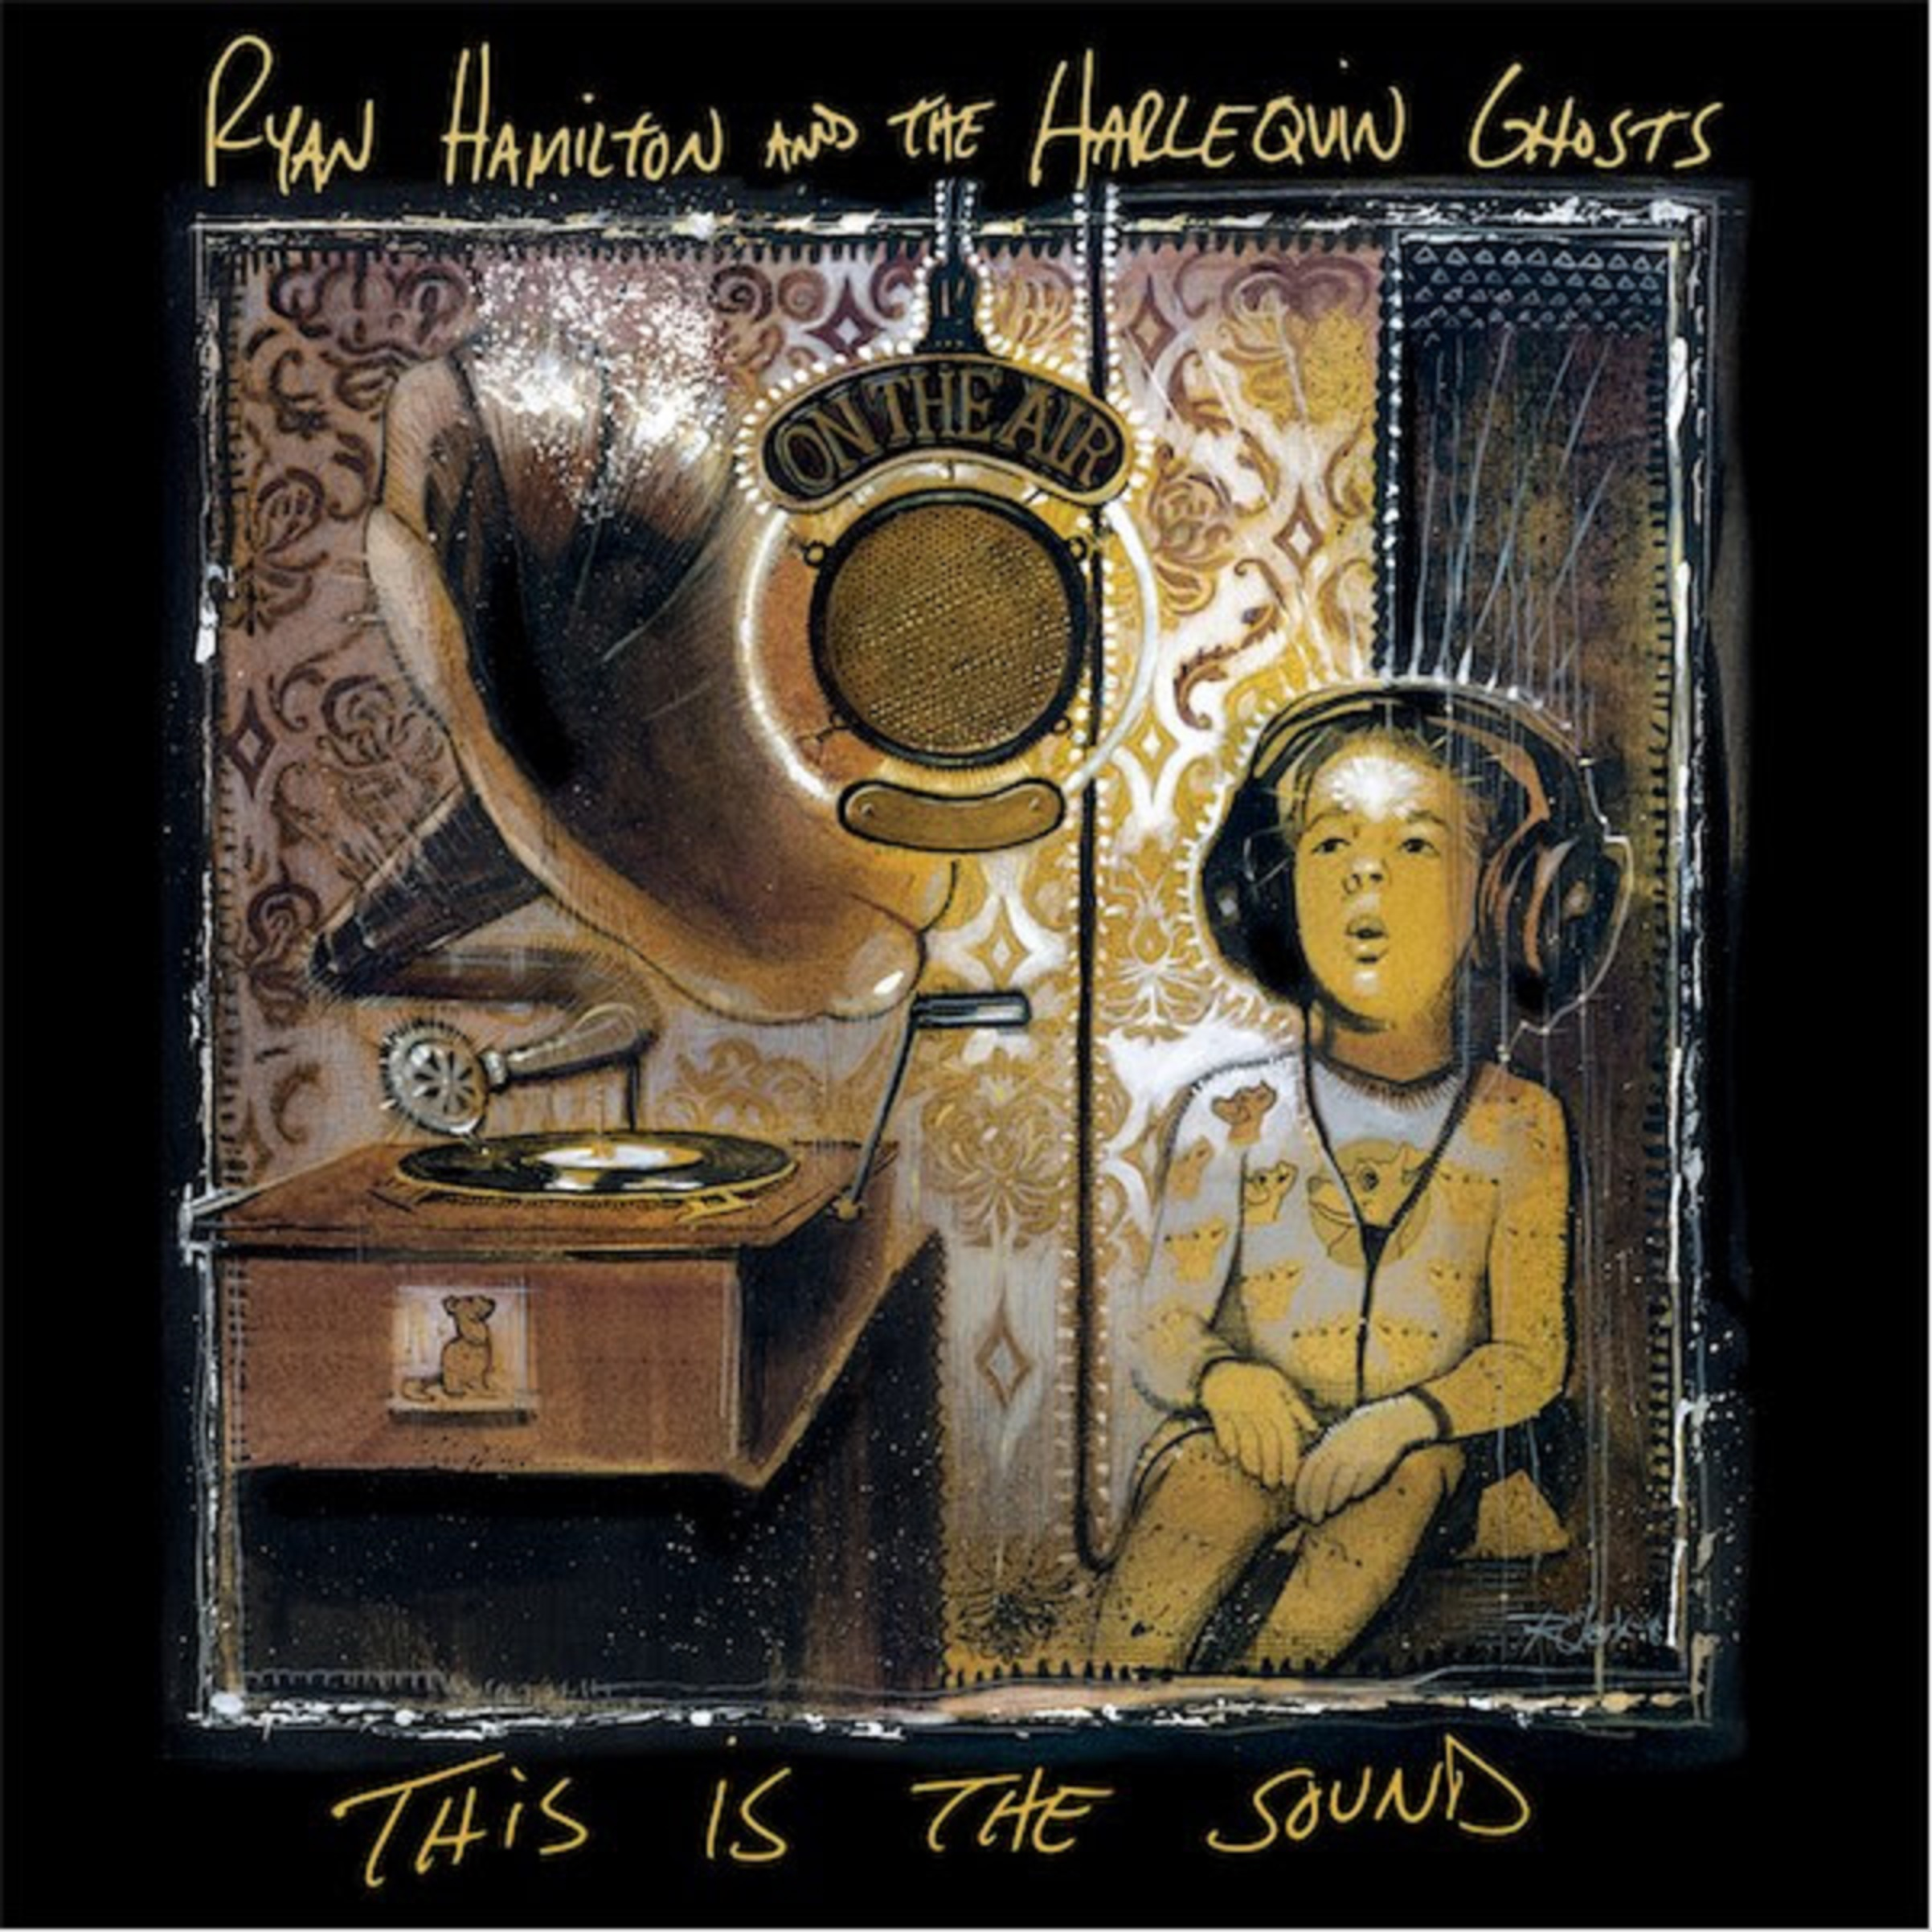 Ryan Hamilton and The Harlequin Ghosts Release Lyric Video for New Single